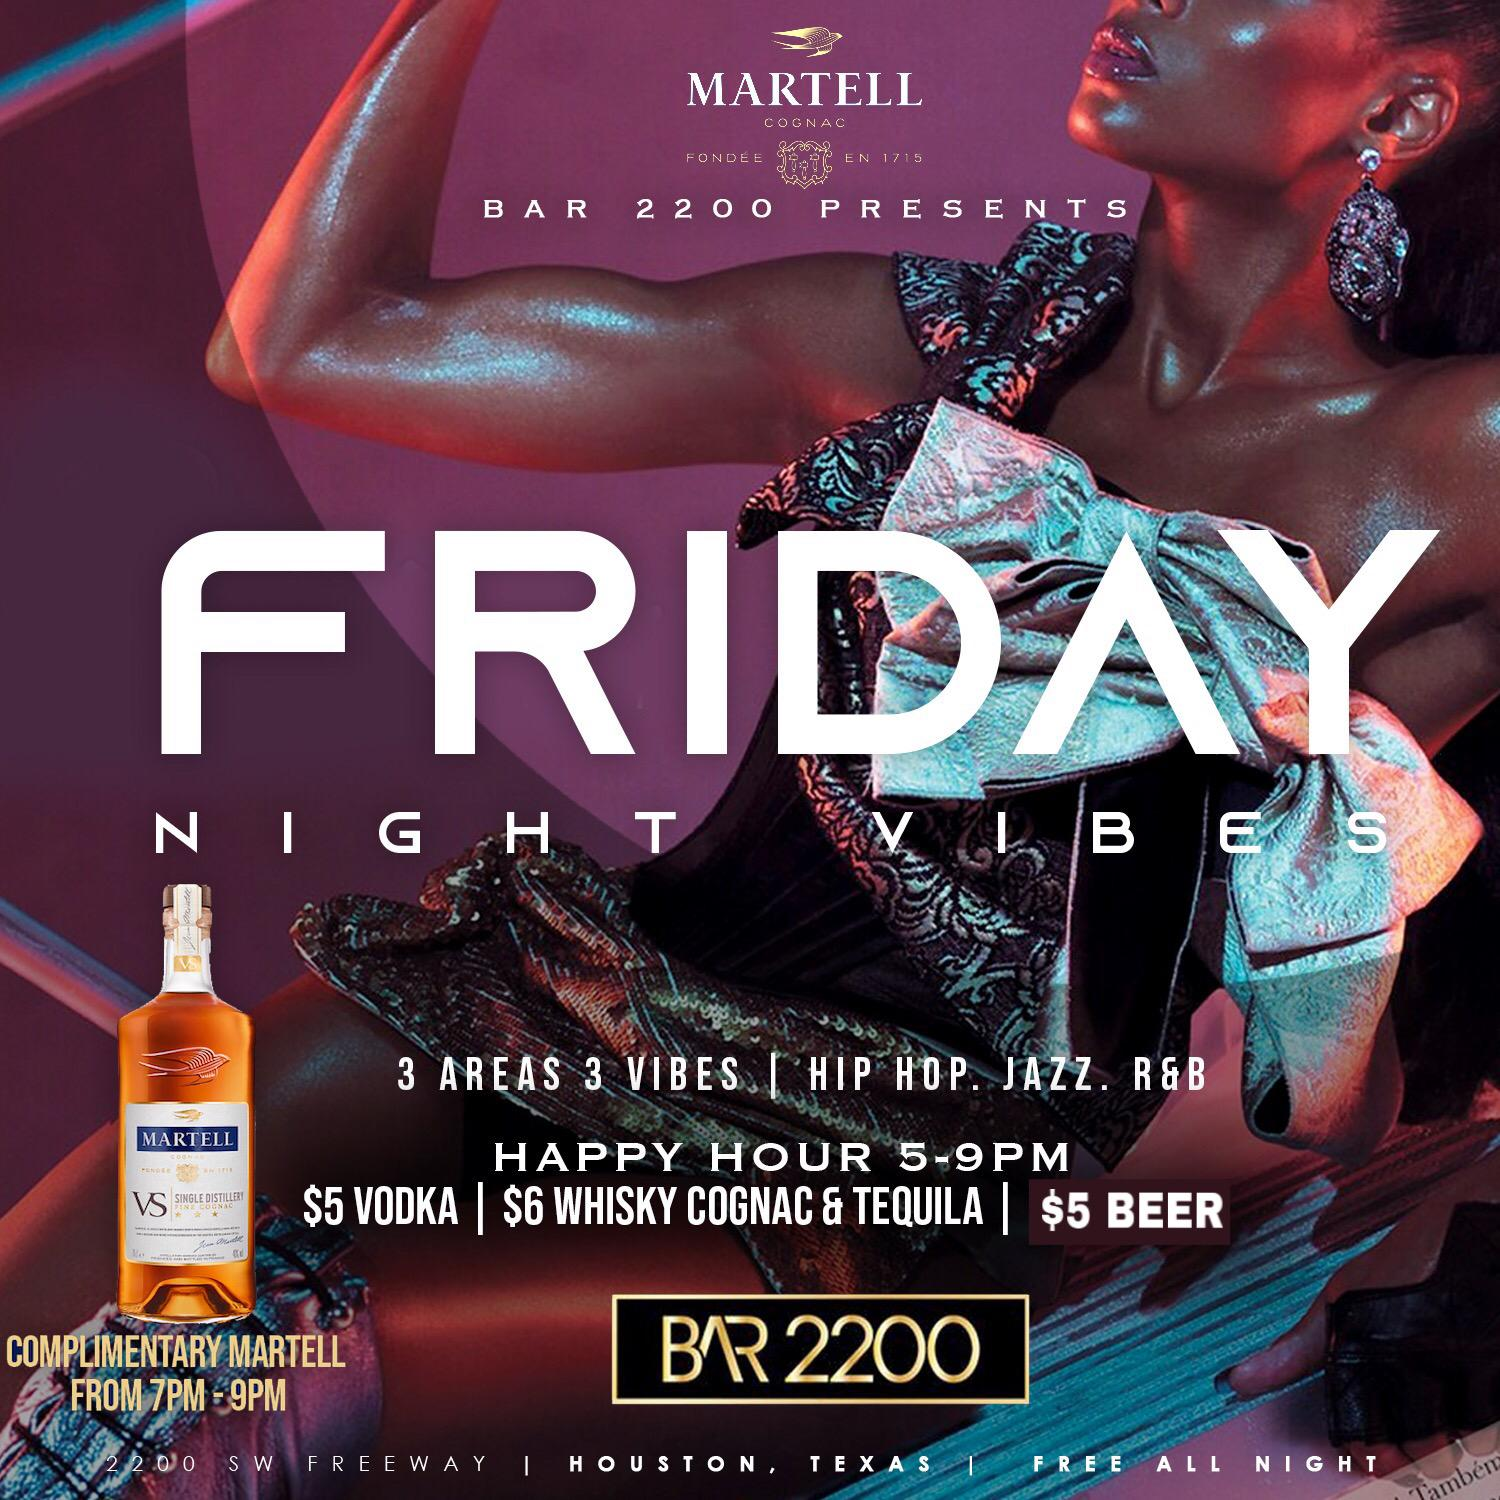 FRIDAYS @ BAR 2200 IN RIVER OAKS | FREE MARTELL COGNAC 7PM-9PM | $5 HAPPY HOUR DRINKS | $20 HOOKAHS| FREE ENTRY ALL NIGHT | FOR BOTTLE SERVICE OR MORE INFO TEXT 832.338.3829 OR @Bar2200htx ON INSTAGRAM